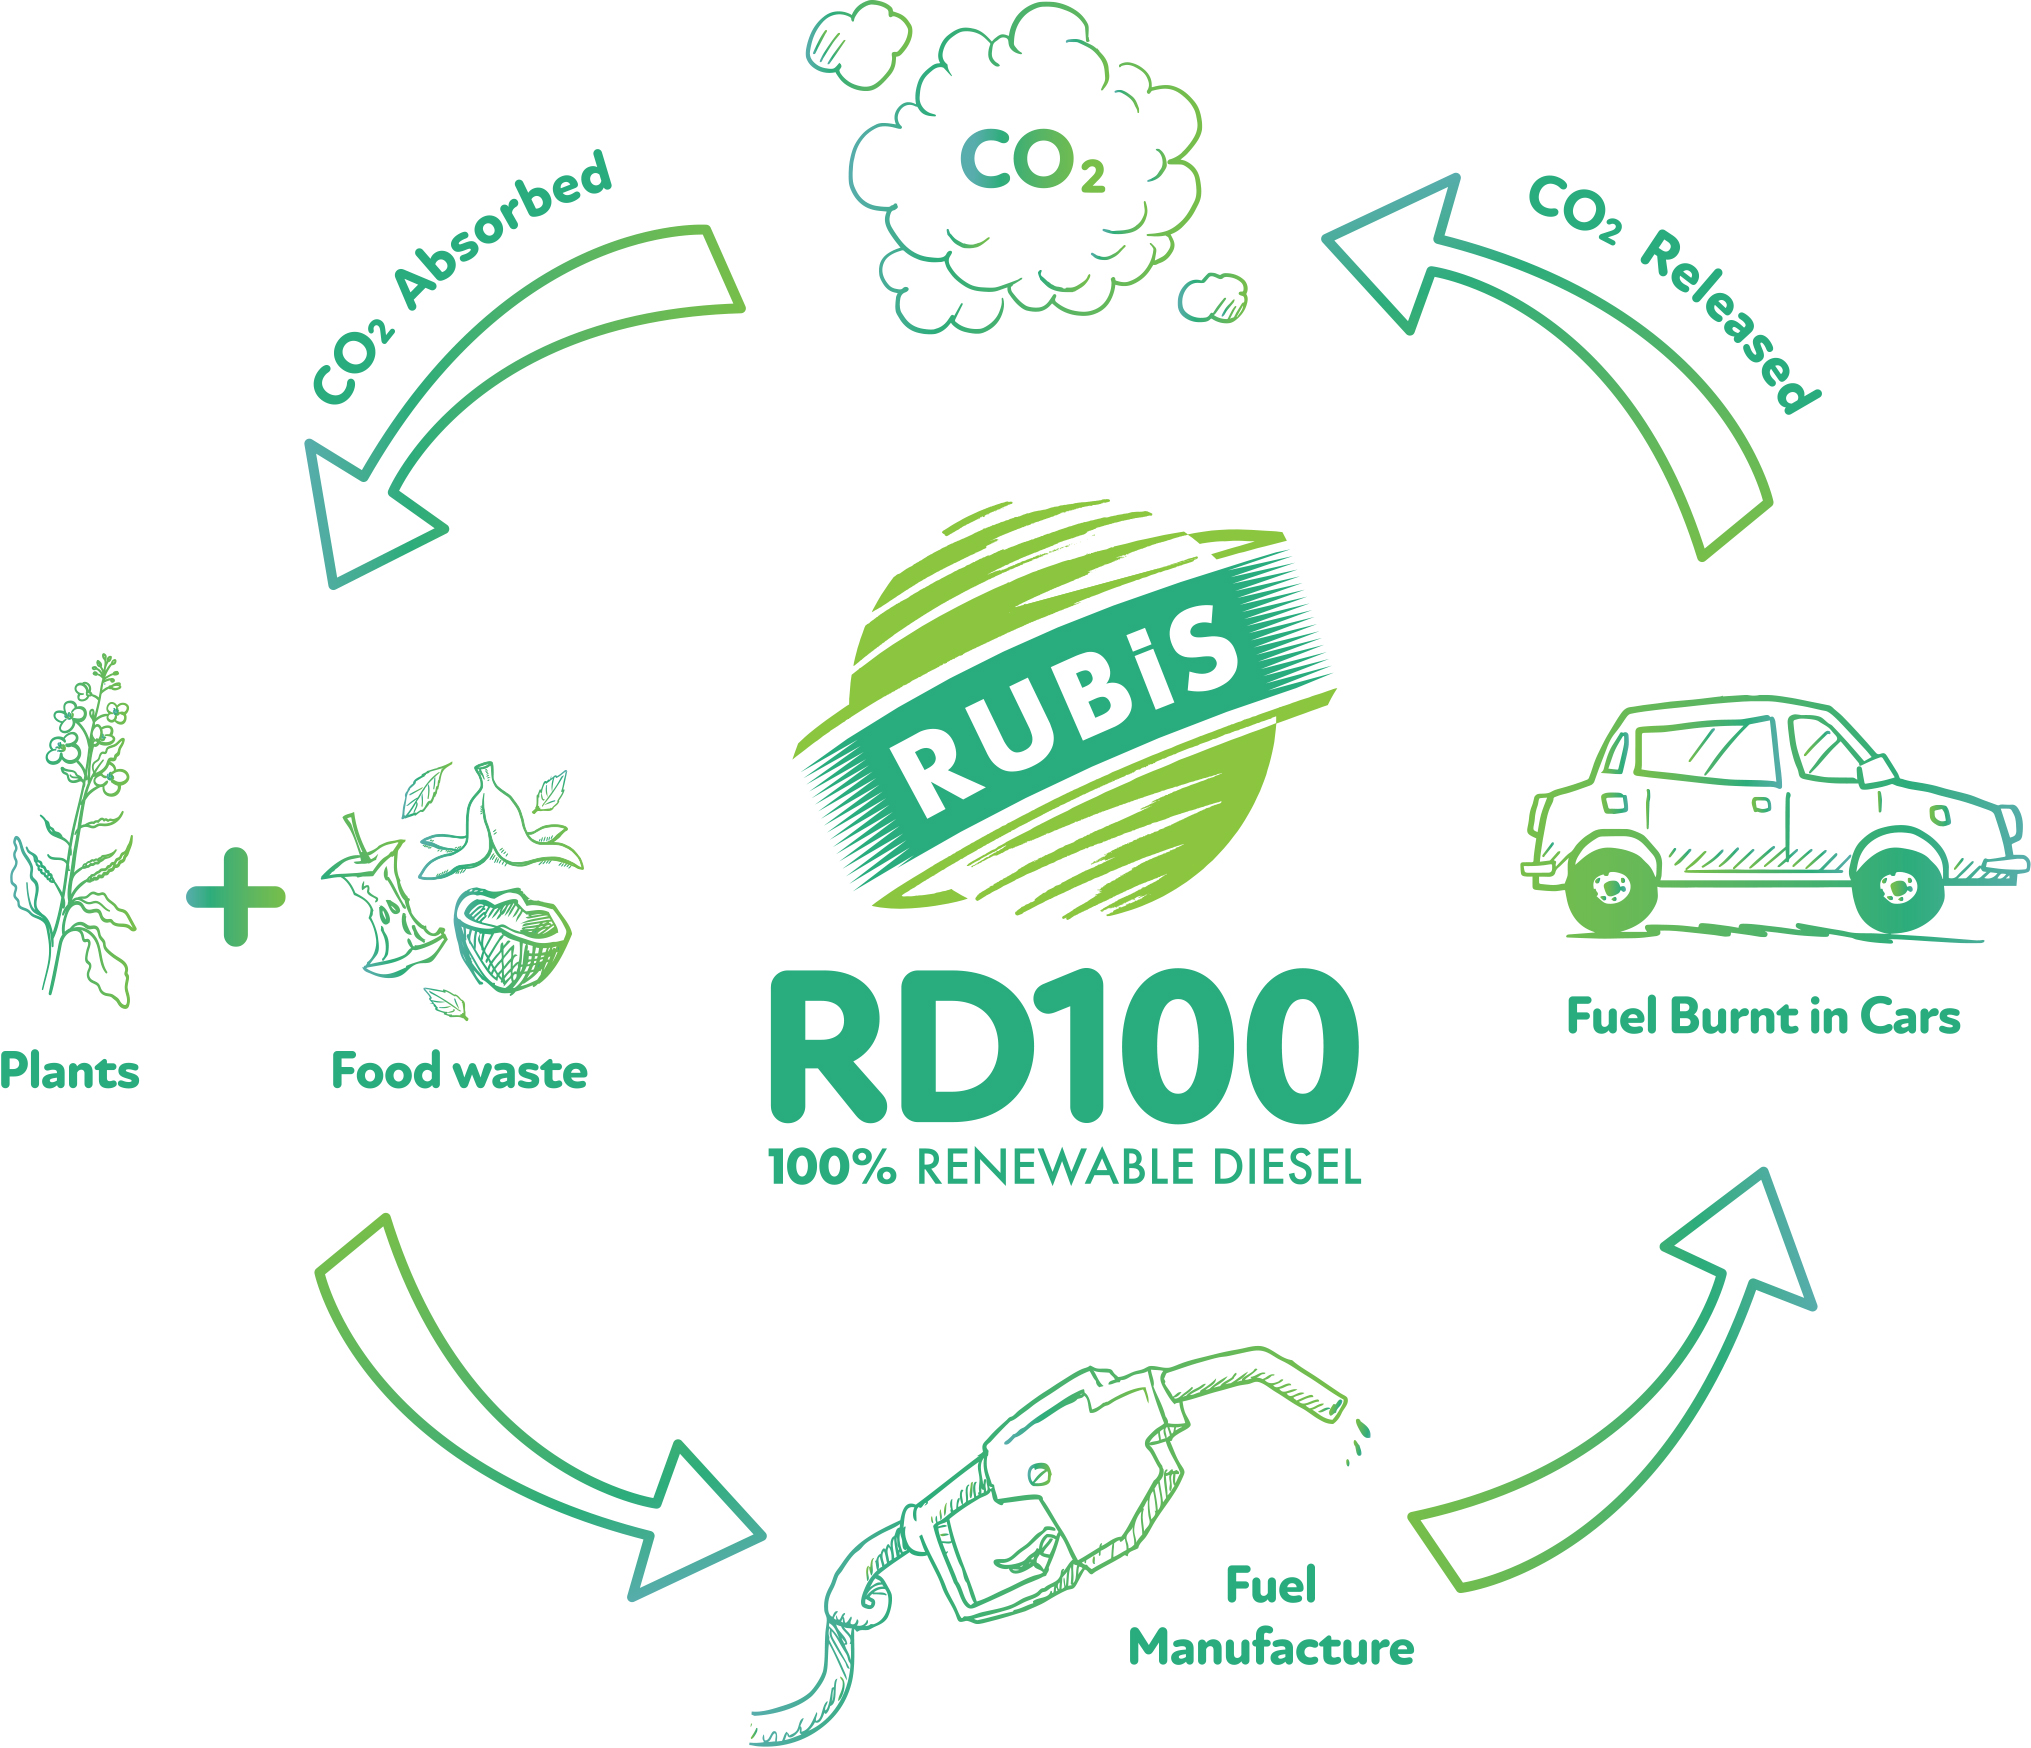 Rubis_RD100_Infographic_for_Press.jpg